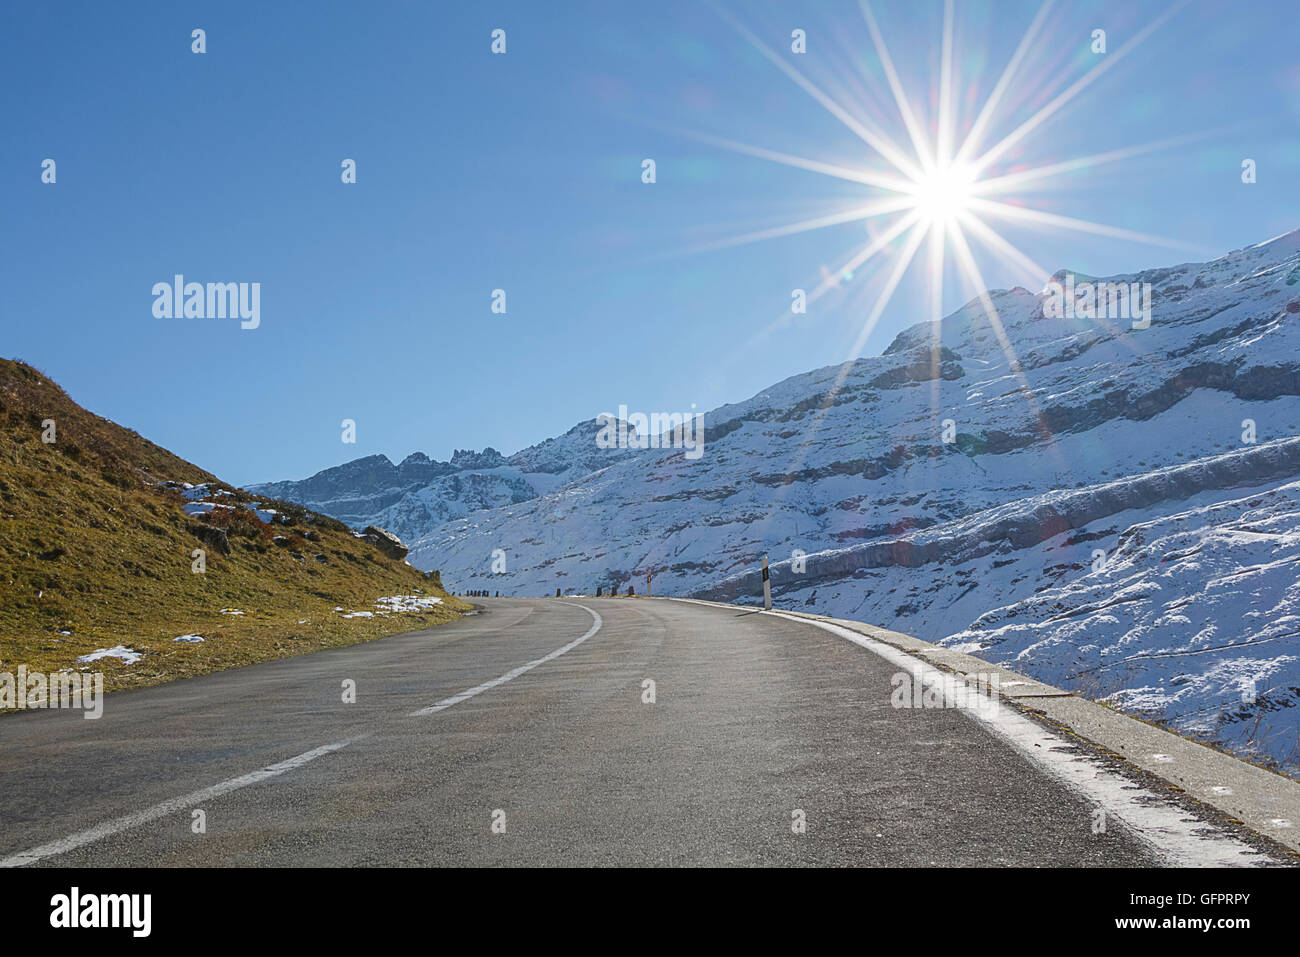 A mountain Road with the sun directly ahead. Could be used to show driving holiday or adventure - Stock Image